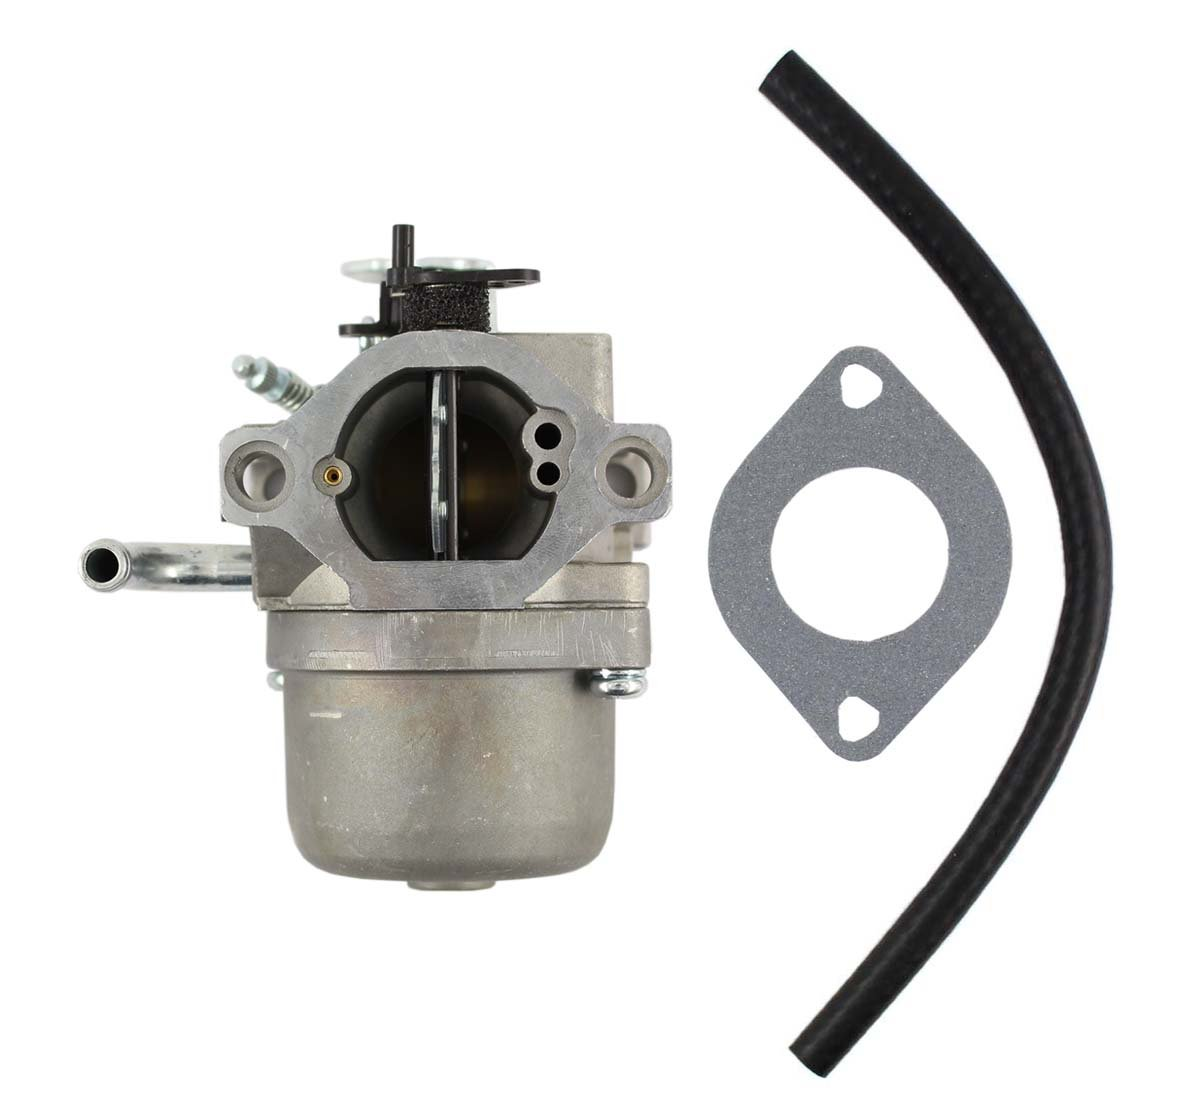 New by XtremeAmazing Carburetor For Briggs & Stratton 590399 796077 lawn mower Riding Carb